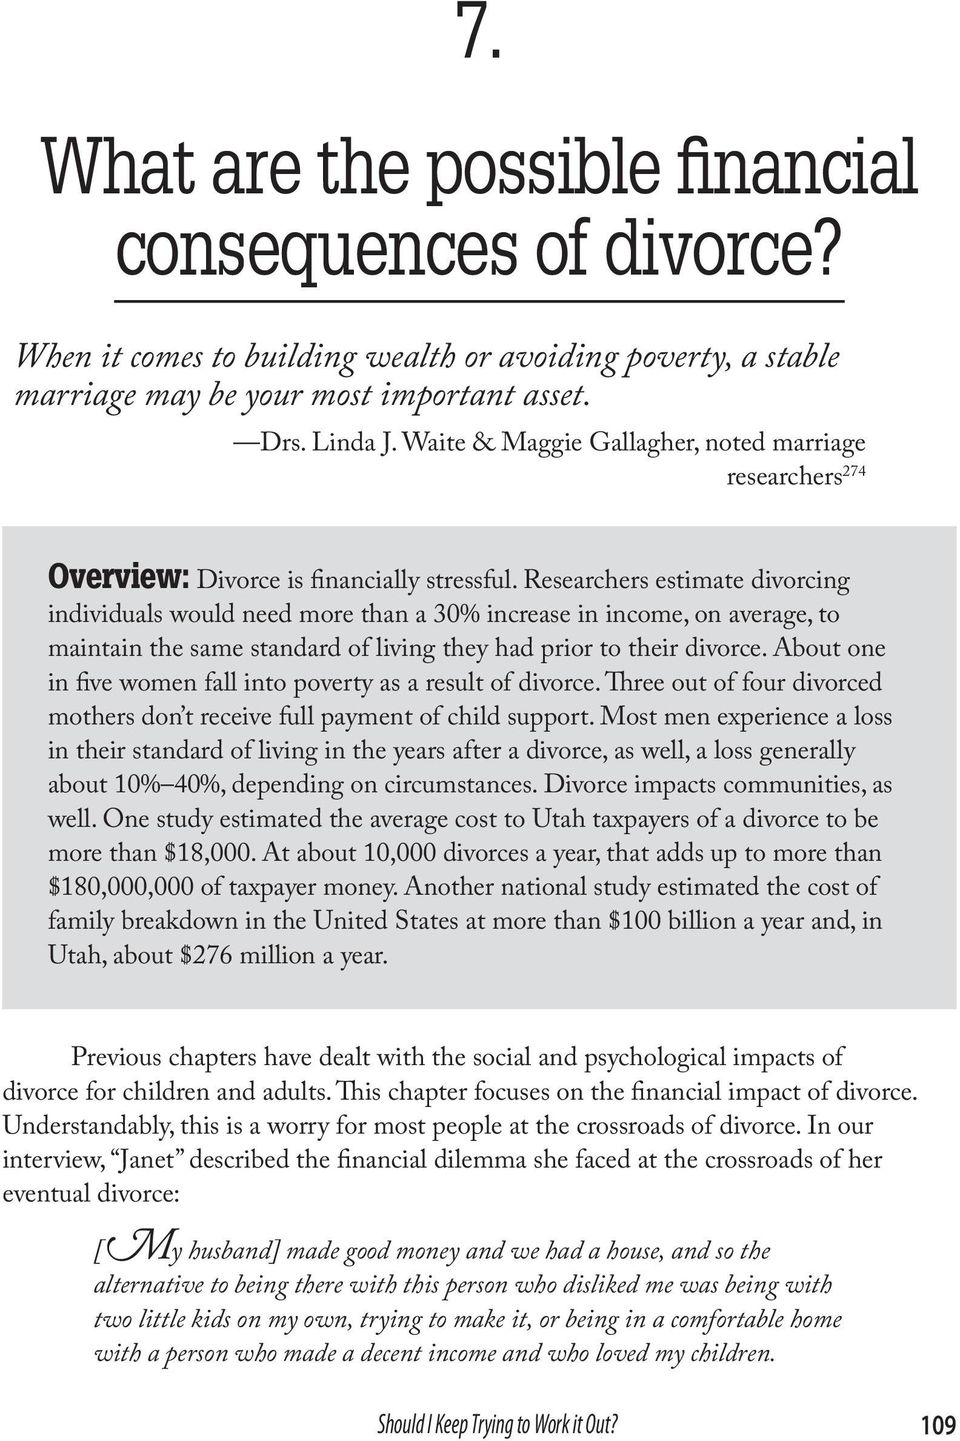 Researchers estimate divorcing individuals would need more than a 30% increase in income, on average, to maintain the same standard of living they had prior to their divorce.